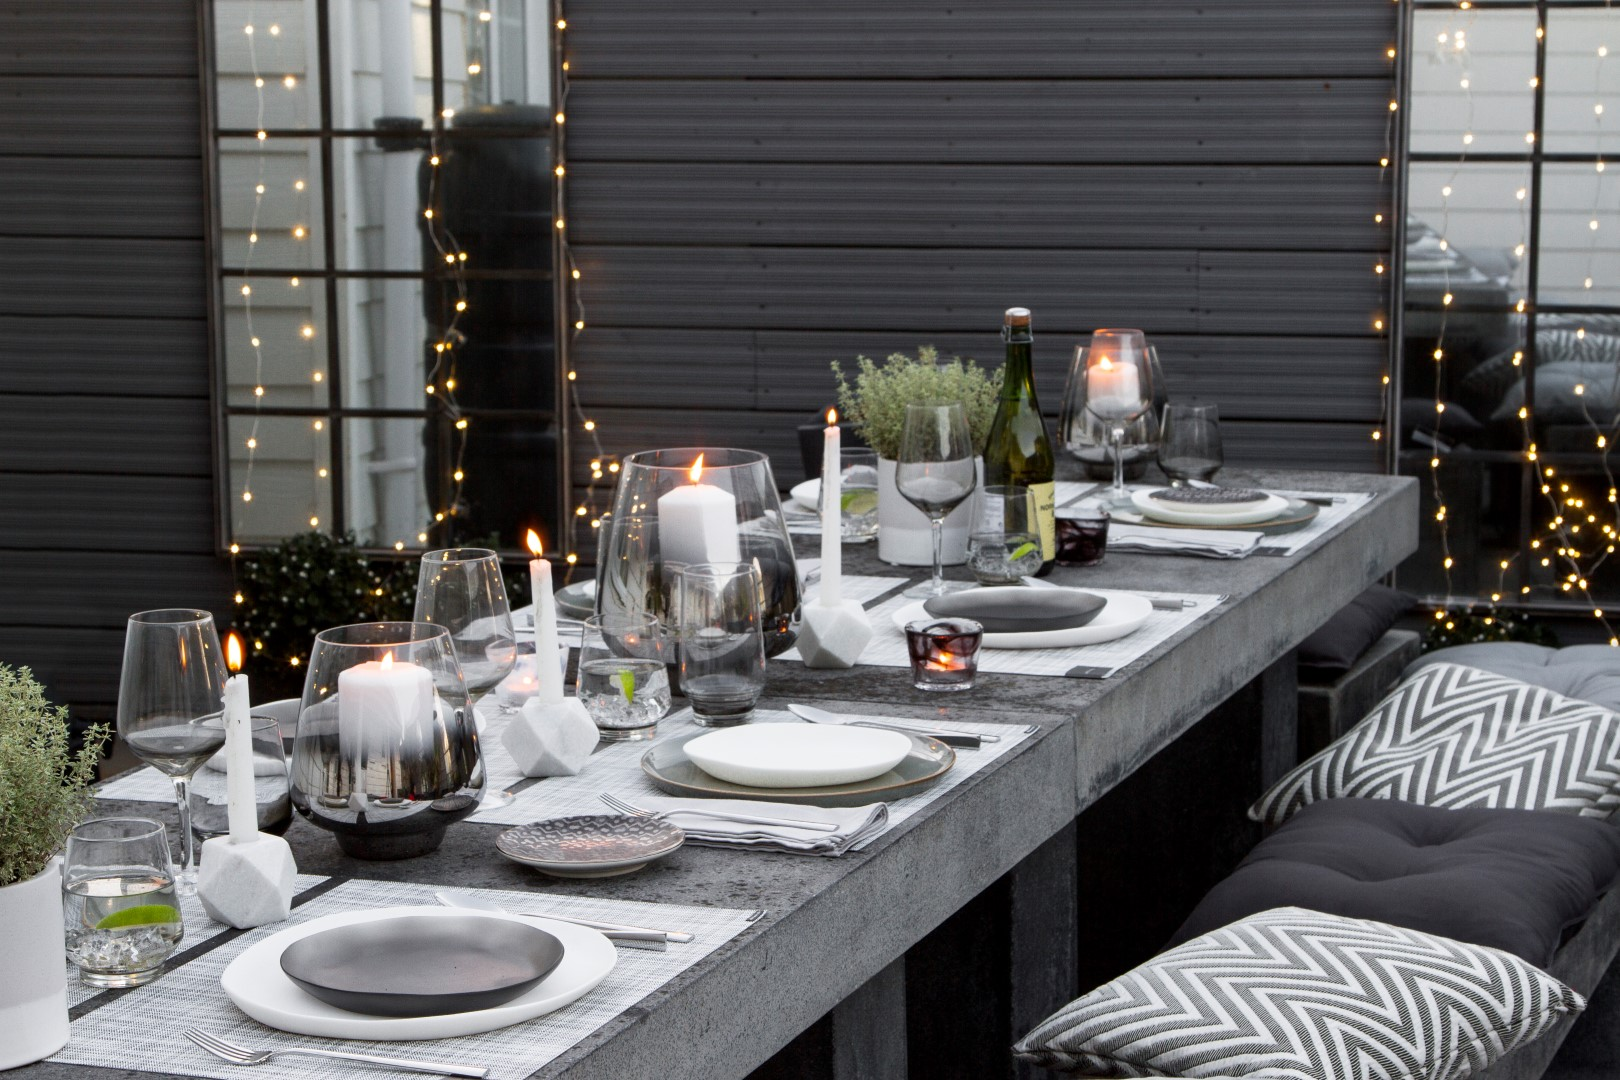 5 Garden Patio Ideas To Prepare For Outdoor Dining